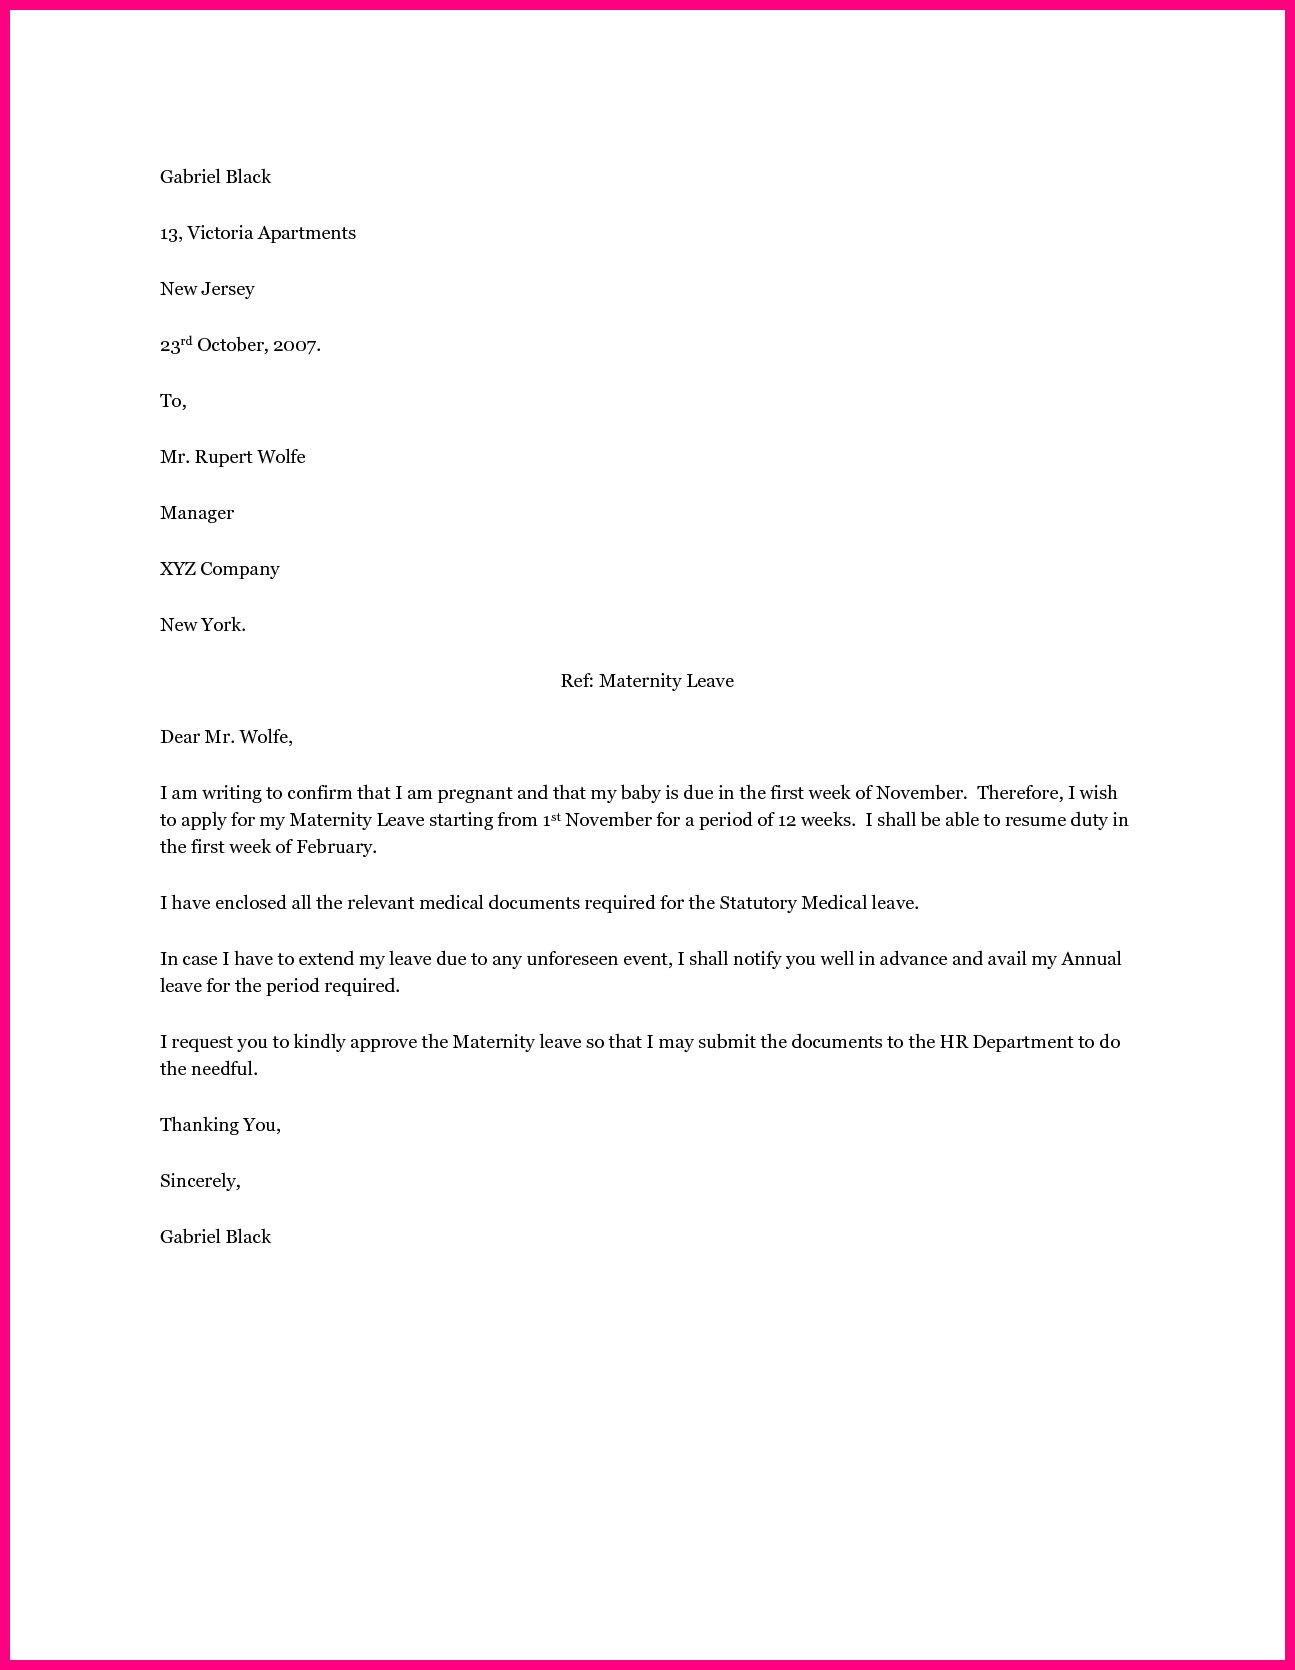 Employee Maternity Leave Letter Sample Application Format For